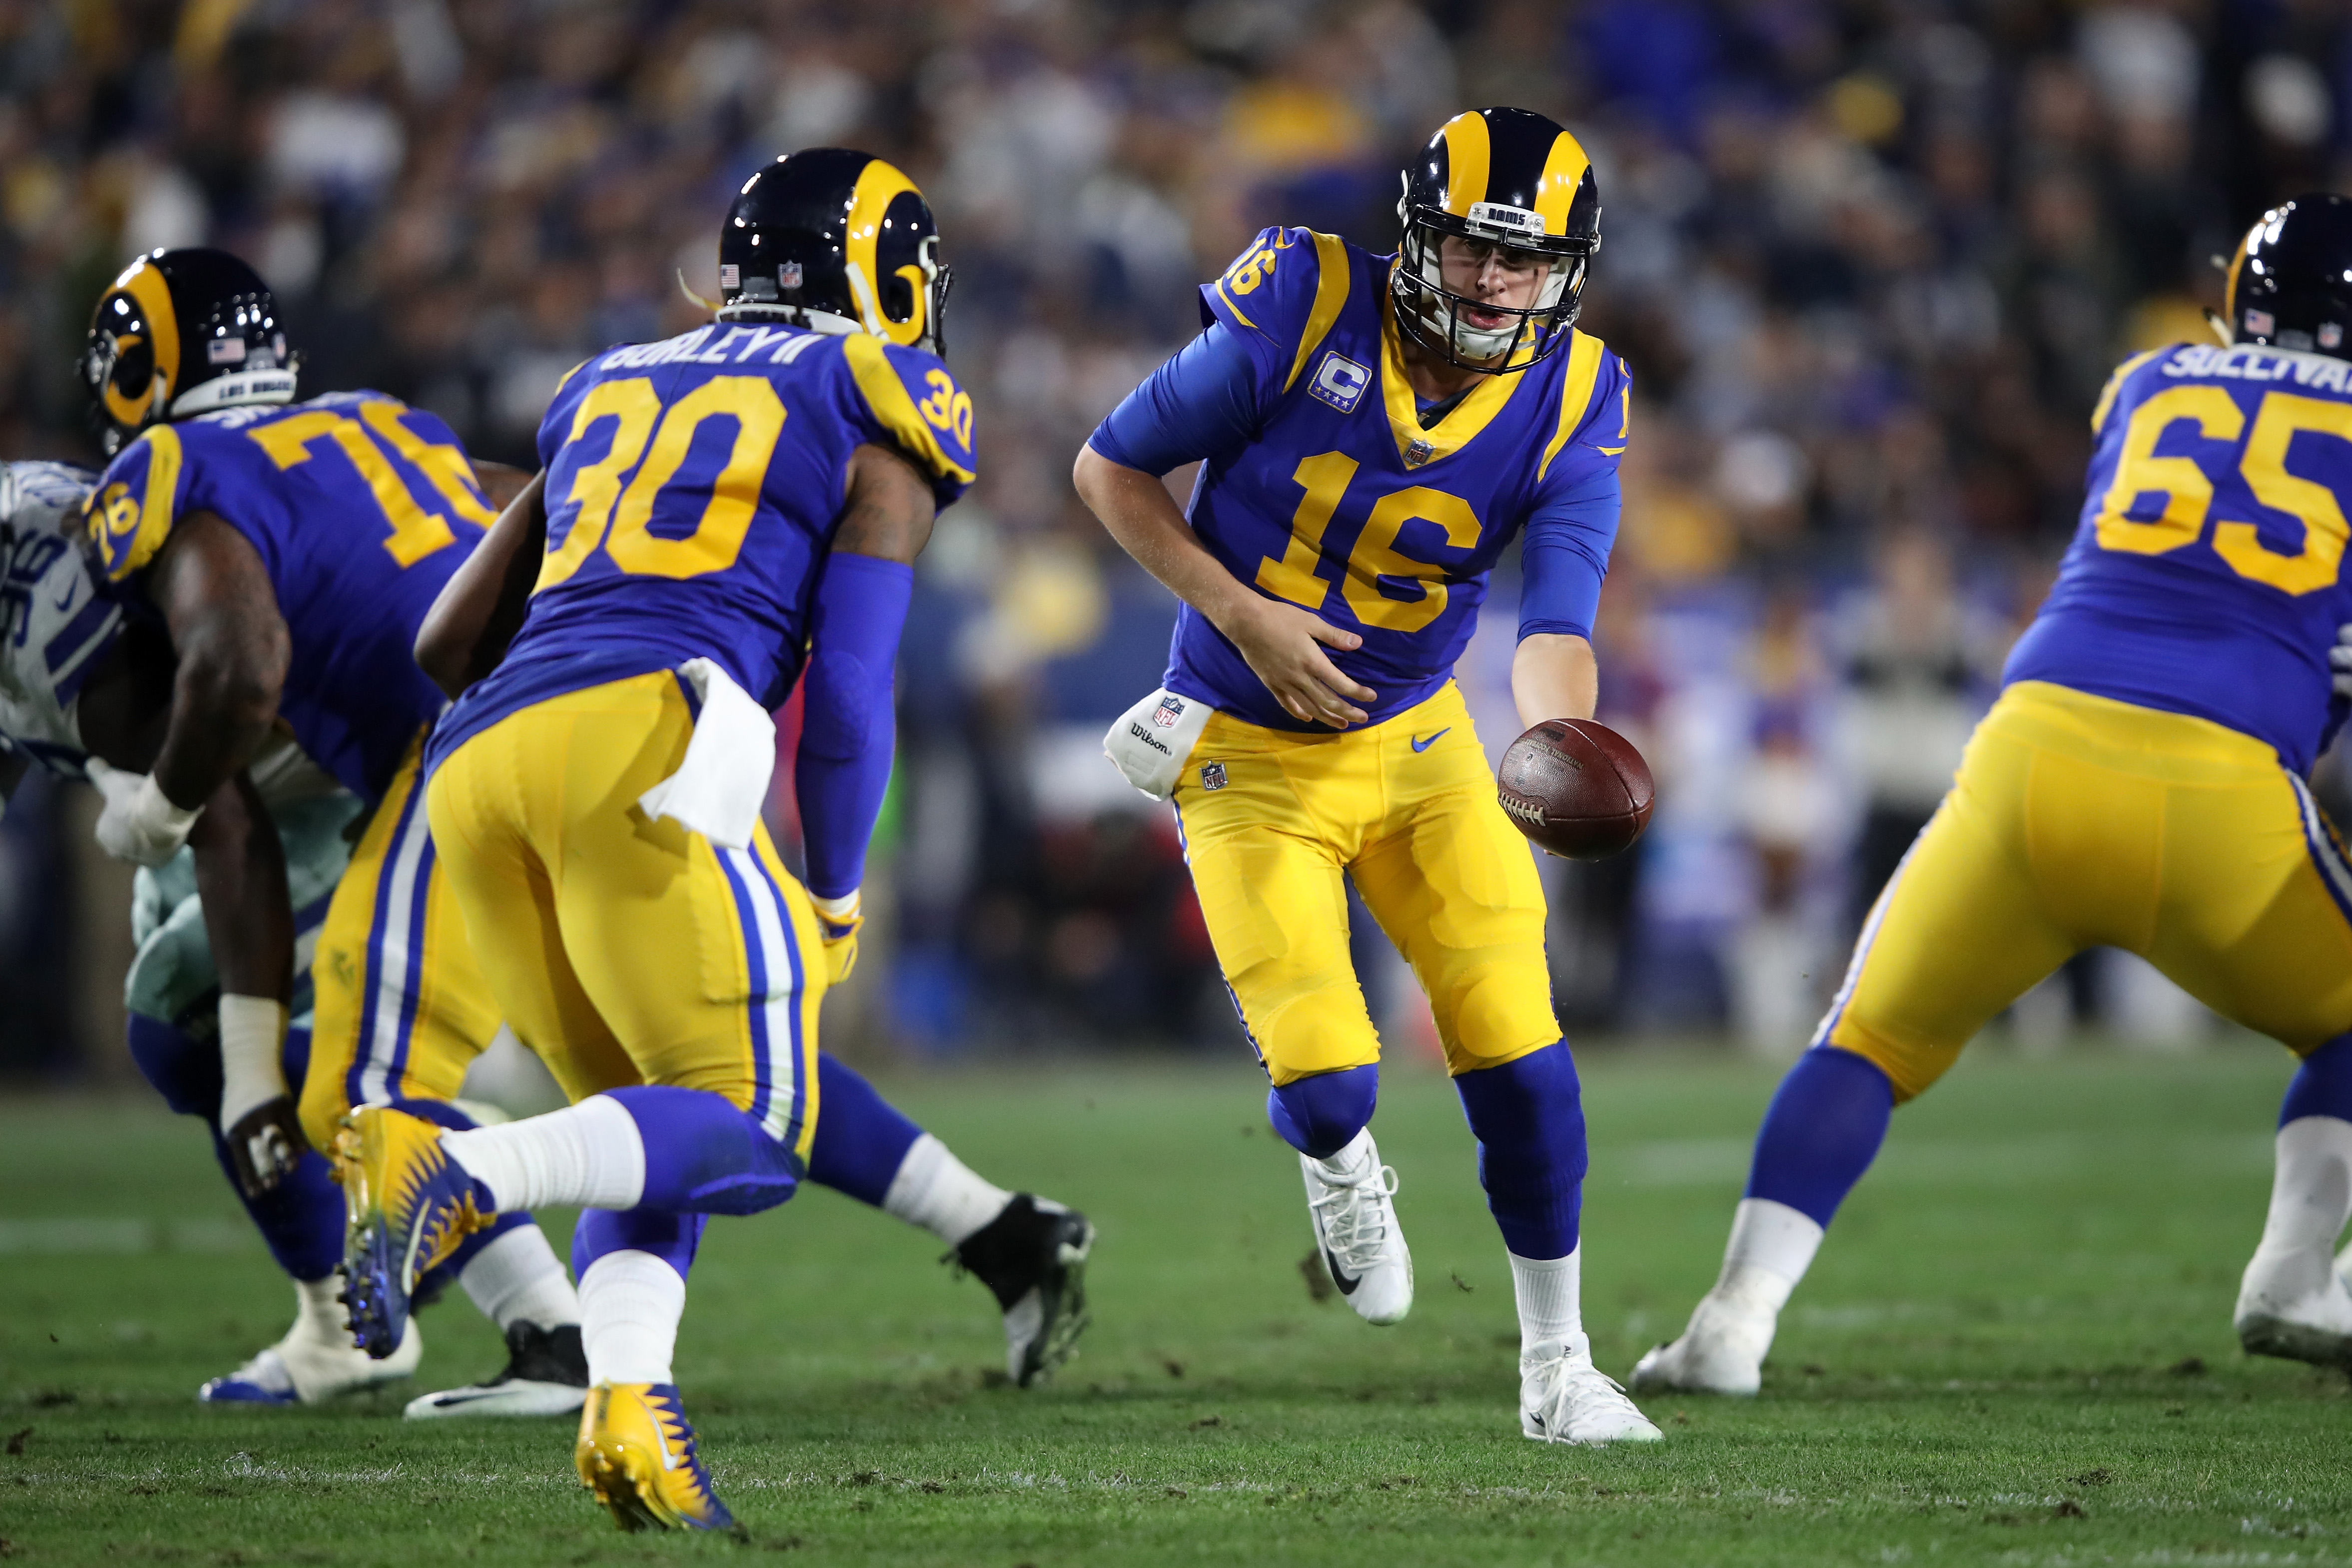 Los Angeles Rams QB Jared Goff hands the ball off to RB Todd Gurley in the NFC Divisional Playoff game against the Dallas Cowboys, Jan. 12, 2019.